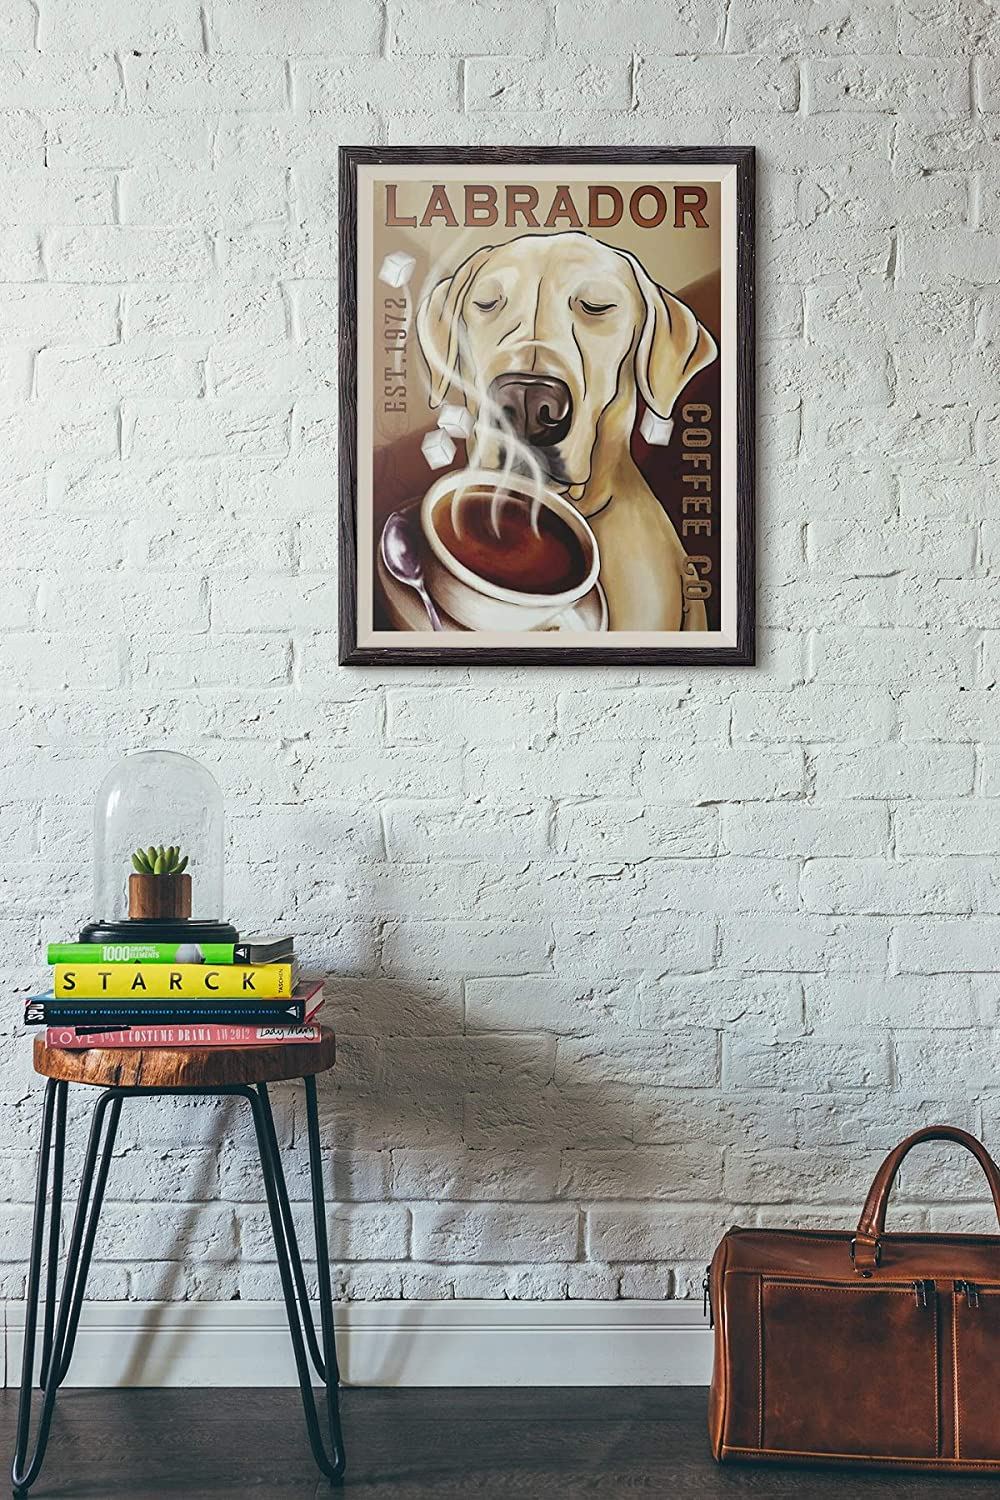 Labrador sweet hot black coffee poster